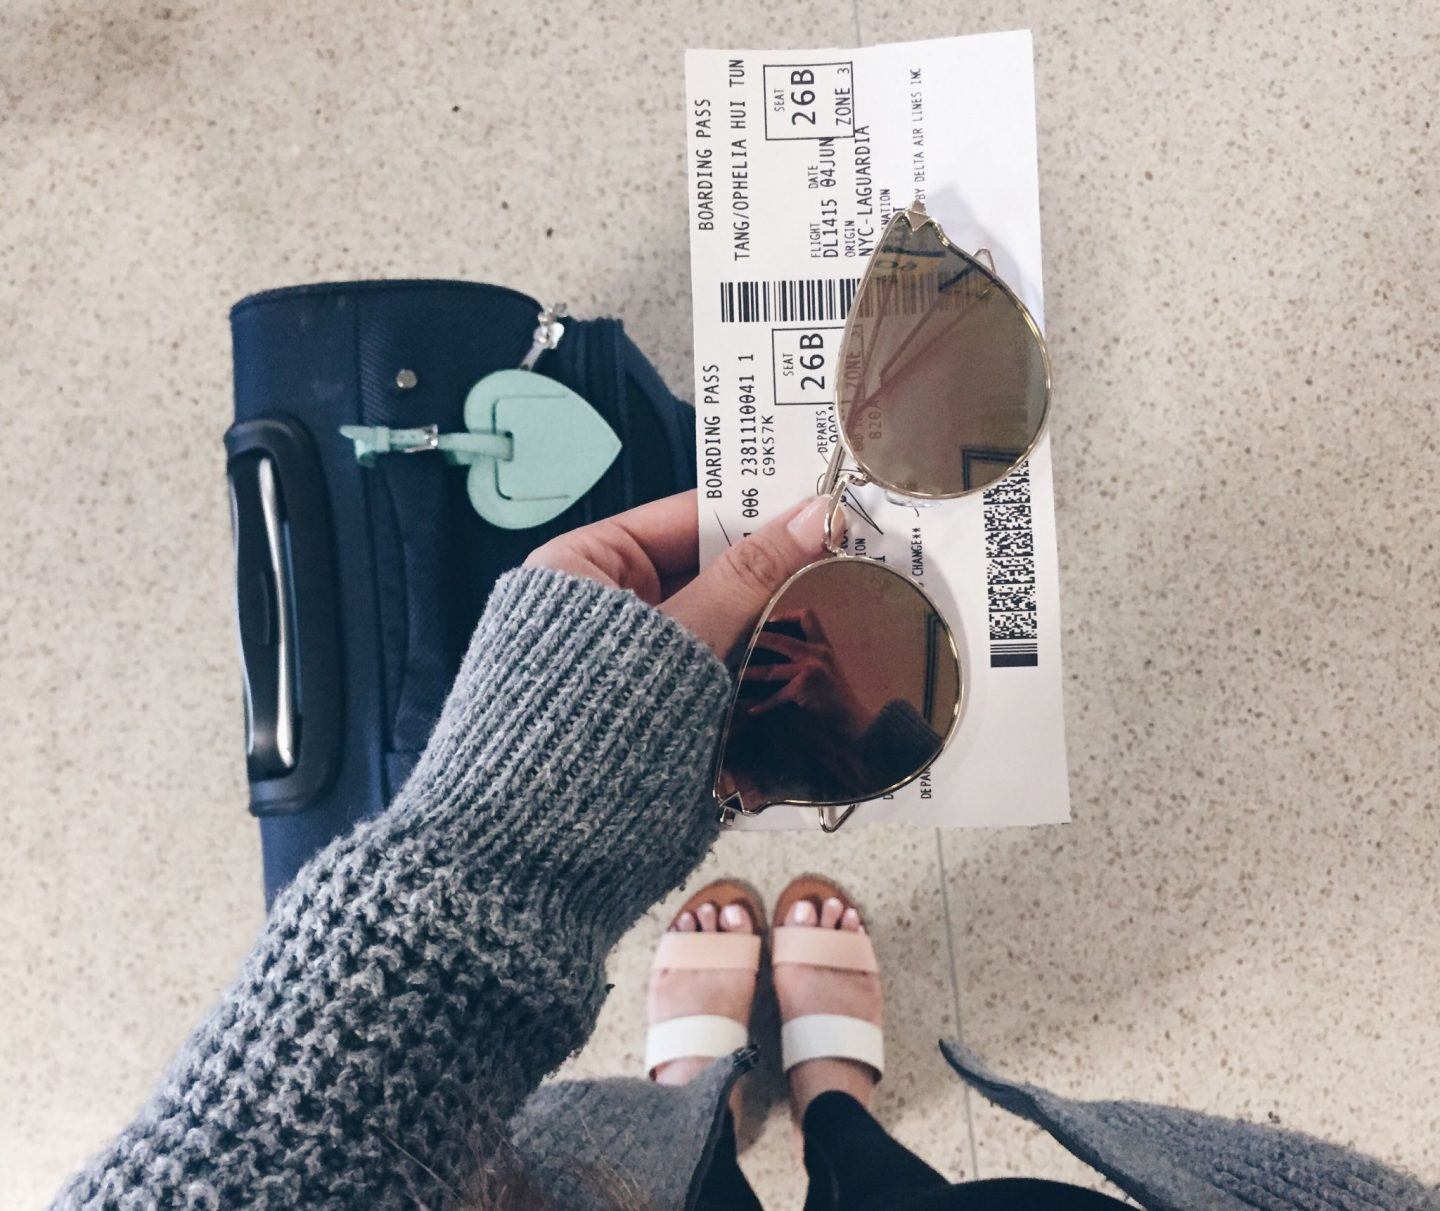 jetsetting flight ticket